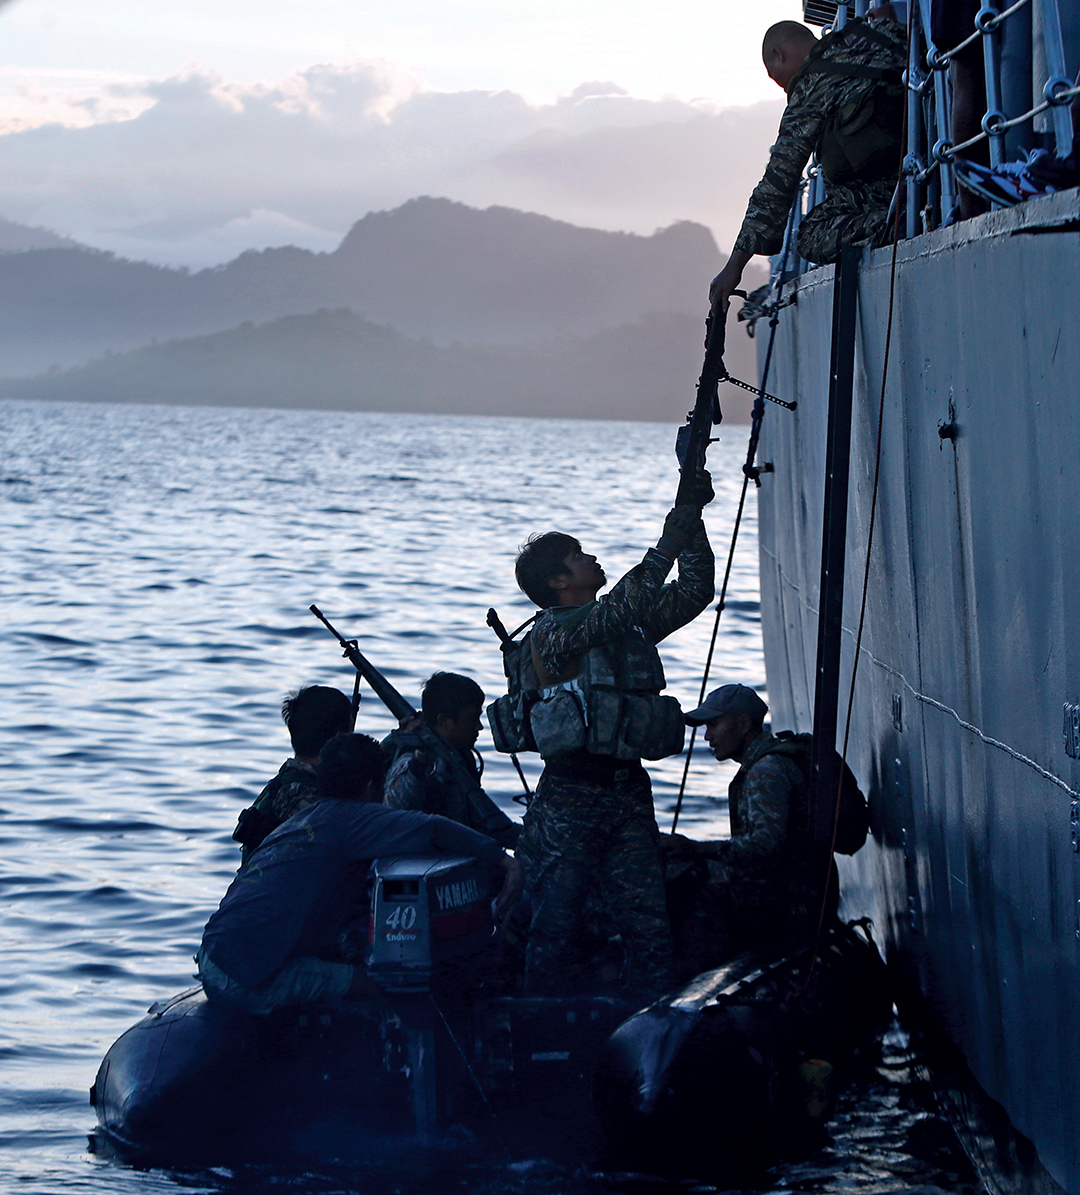 Philippine Marines transfer from a patrol boat to a rubber boat after conducting a mission at the disputed Second Thomas Shoal, part of the Spratly Islands in the South China Sea. They were returning to a naval forces camp in Palawan province, southwest Philippines, in March 2014. REUTERS